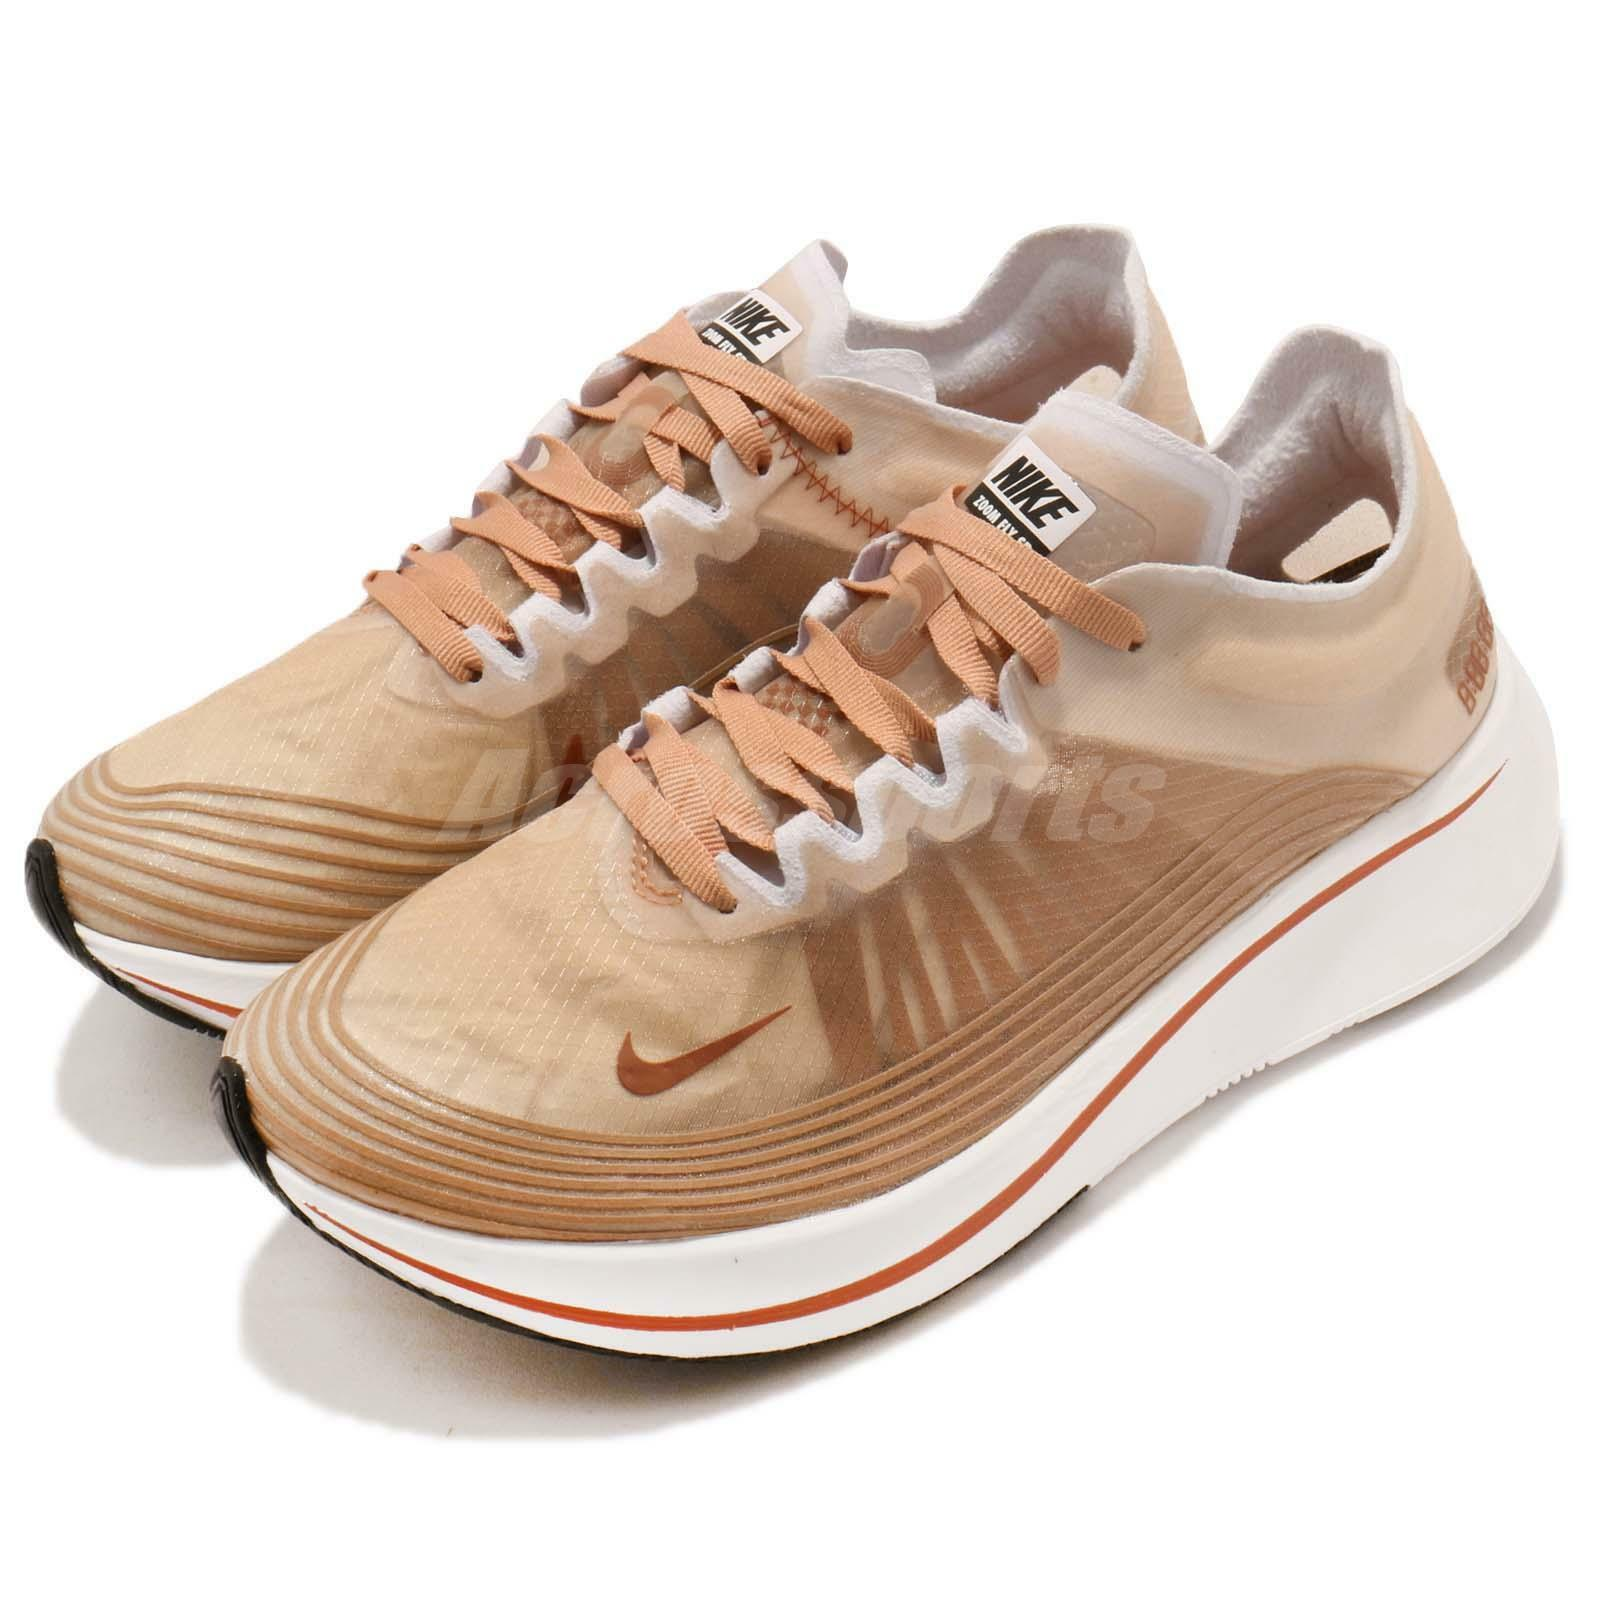 Nike Wmns Zoom Fly SP Dusty Peach White AJ8229-200 Women Running Shoes Sneakers AJ8229-200 White 746566